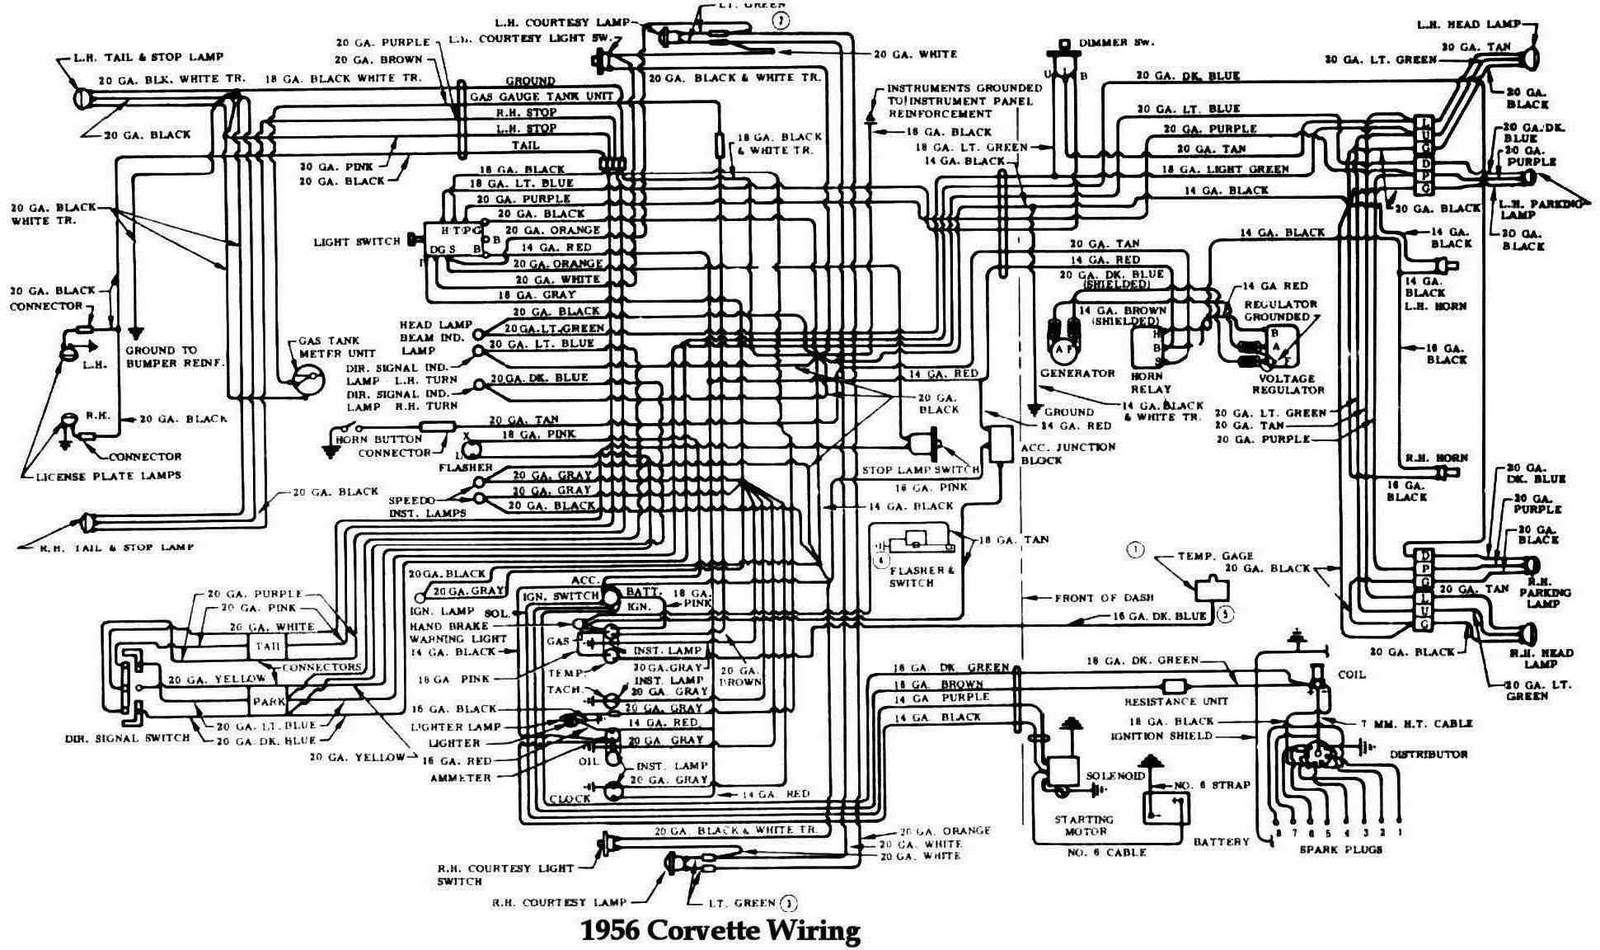 Chevrolet+Corvette+1956+Wiring+Diagram  Chevy Astro Wiring Diagram on chrysler 300m wiring diagram, chevy avalanche wiring-diagram, 2003 astro wiring diagram, toyota sequoia wiring diagram, cadillac srx wiring diagram, buick lacrosse wiring diagram, chevy astro rear door latch, 2001 s10 wiring diagram, chevy astro chassis, 2001 astro wiring diagram, porsche cayenne wiring diagram, lexus rx350 wiring diagram, chevy astro pulley diagram, gauge wiring diagram, chevy astro exhaust system, ford aerostar wiring diagram, chevy astro suspension, chevy astro firing order, chevy hhr wiring-diagram, chevy astro cooling system,